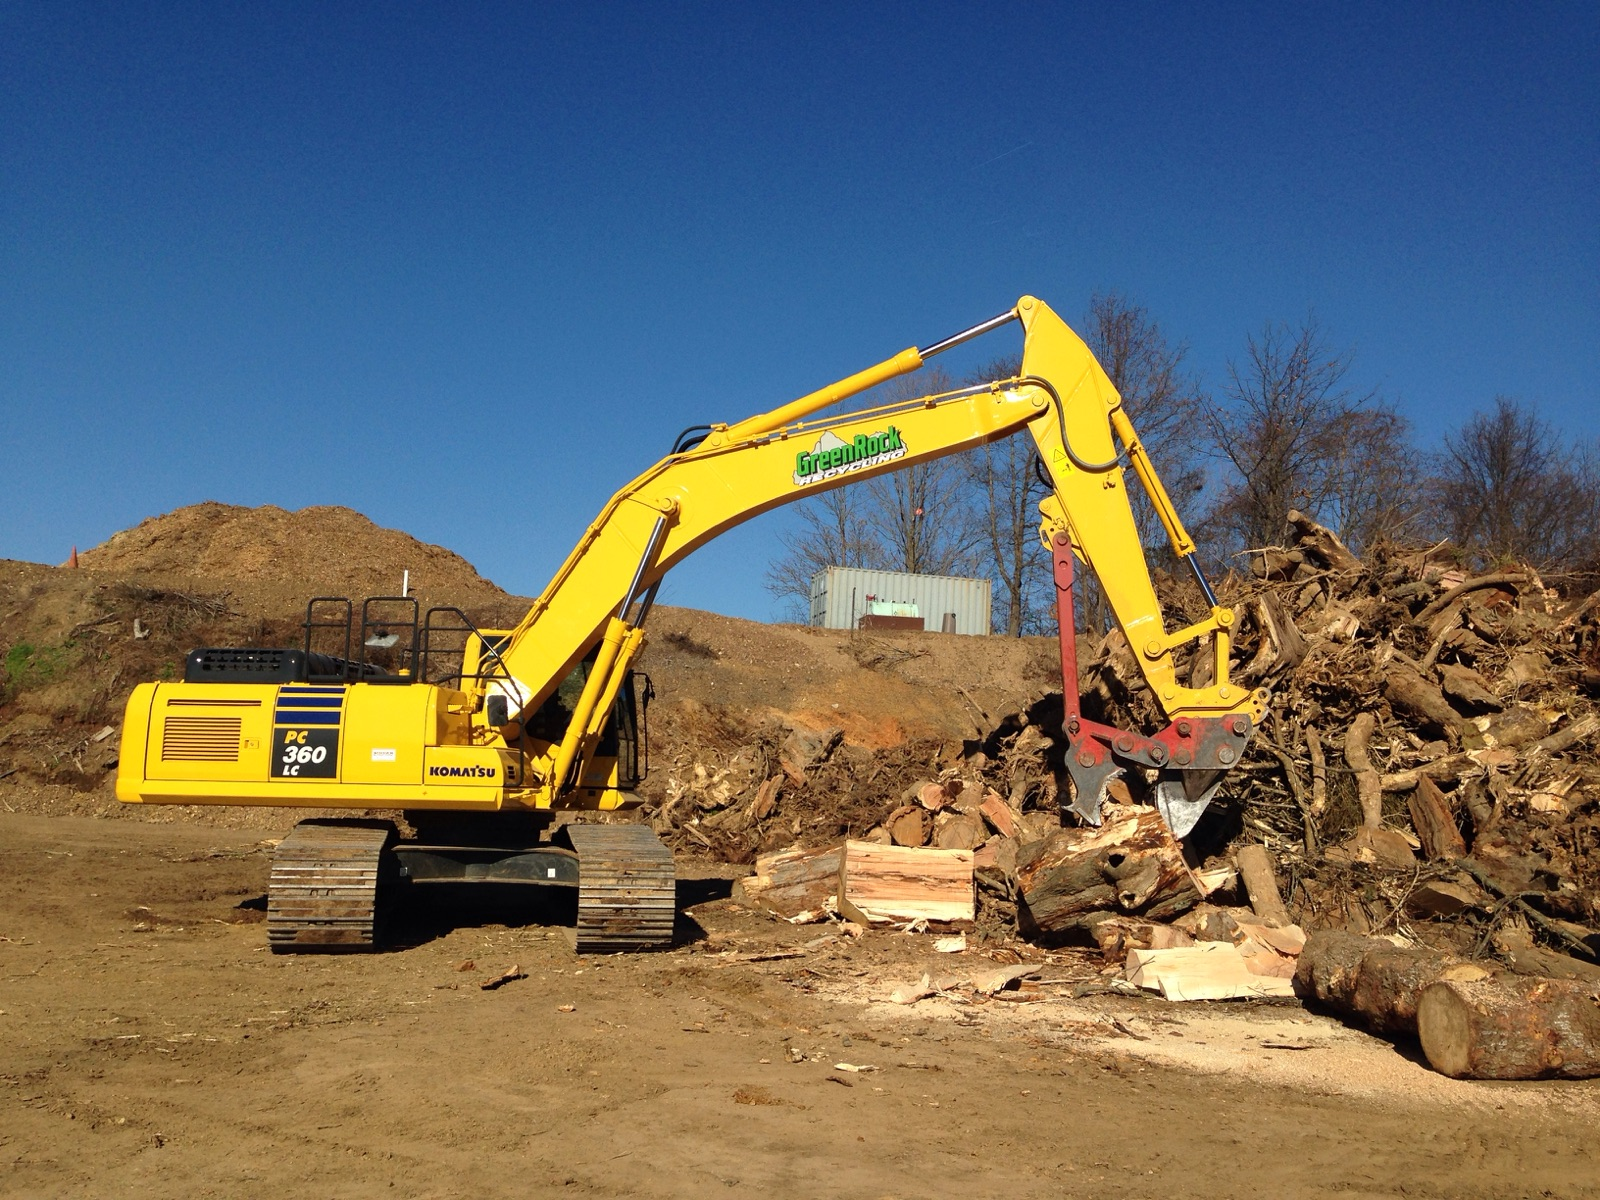 Tree products and wood recylcing at GreenRock Recycling